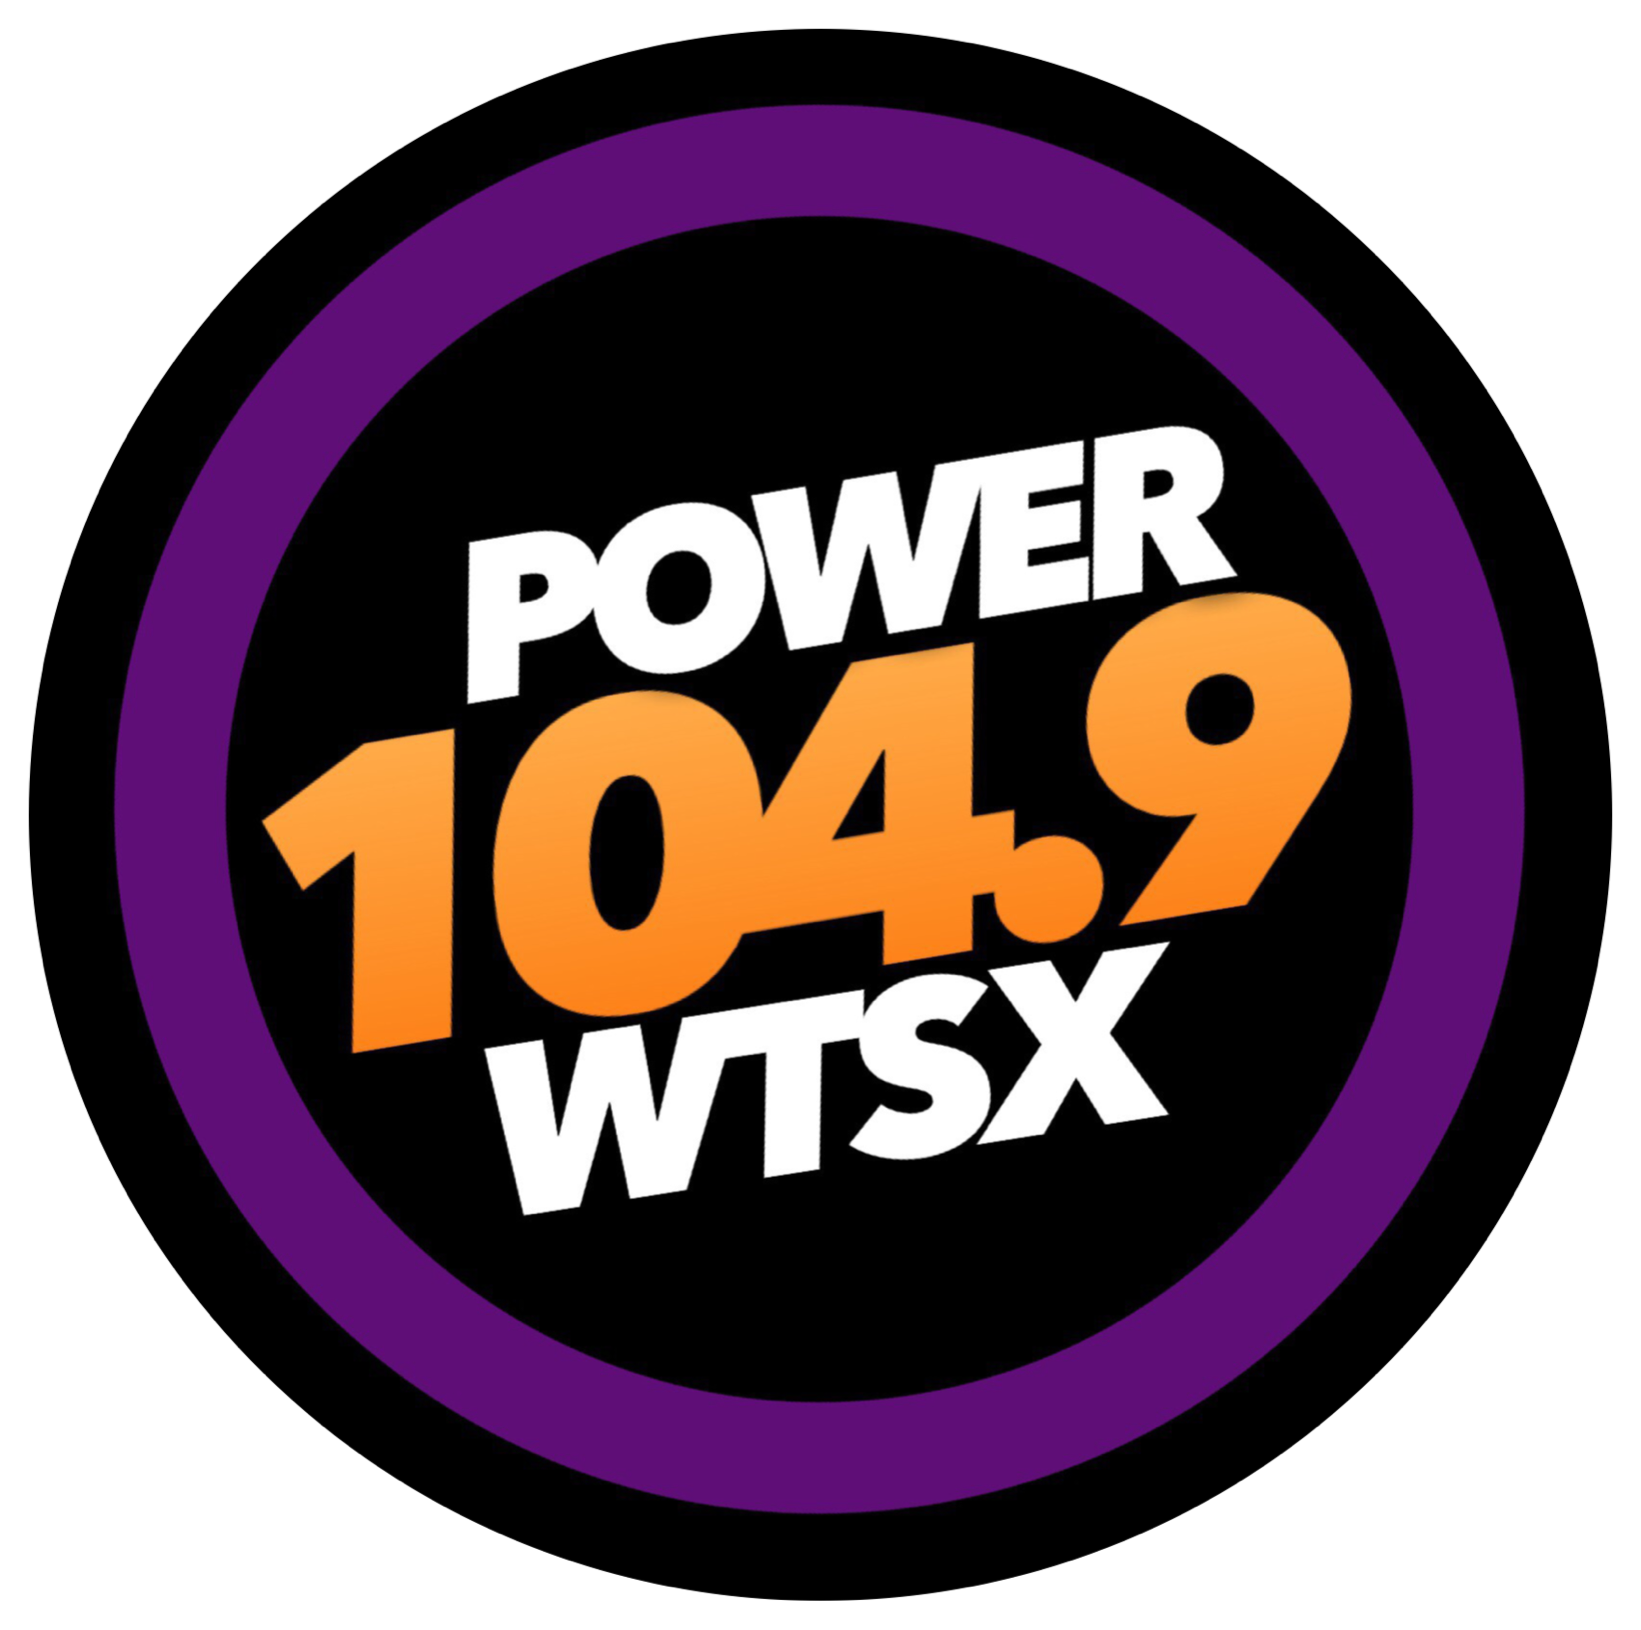 WTSX POWER 104.9 FM INDIANA